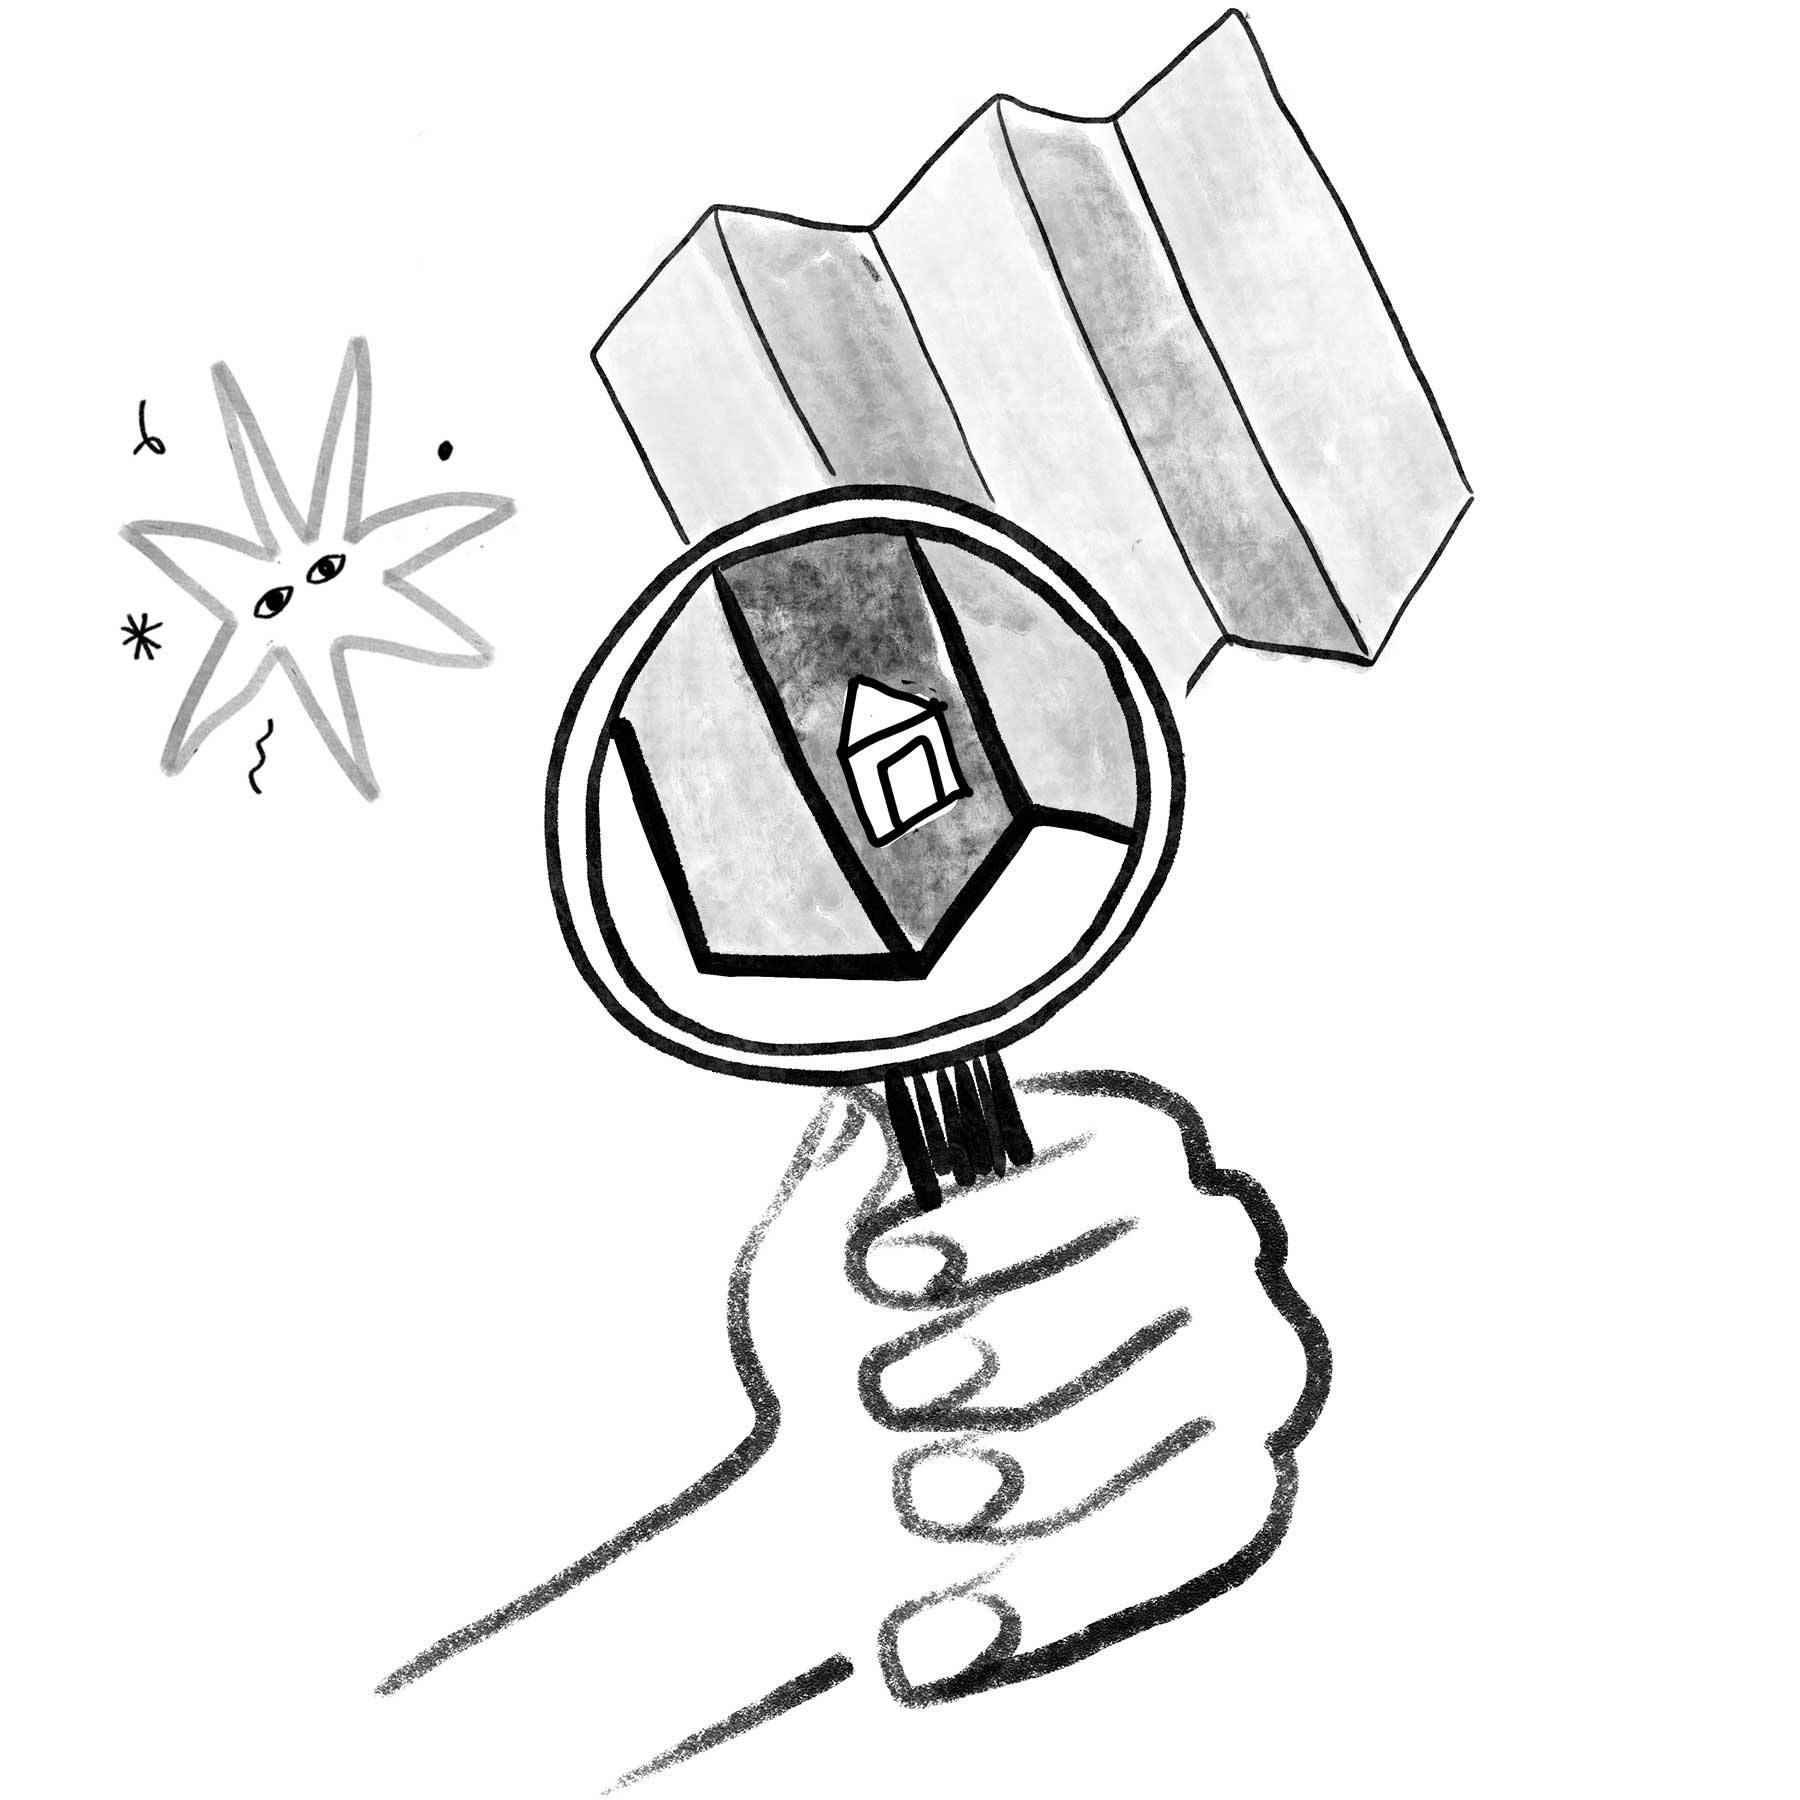 Illustration of a hand holding a magnifying glass over a map